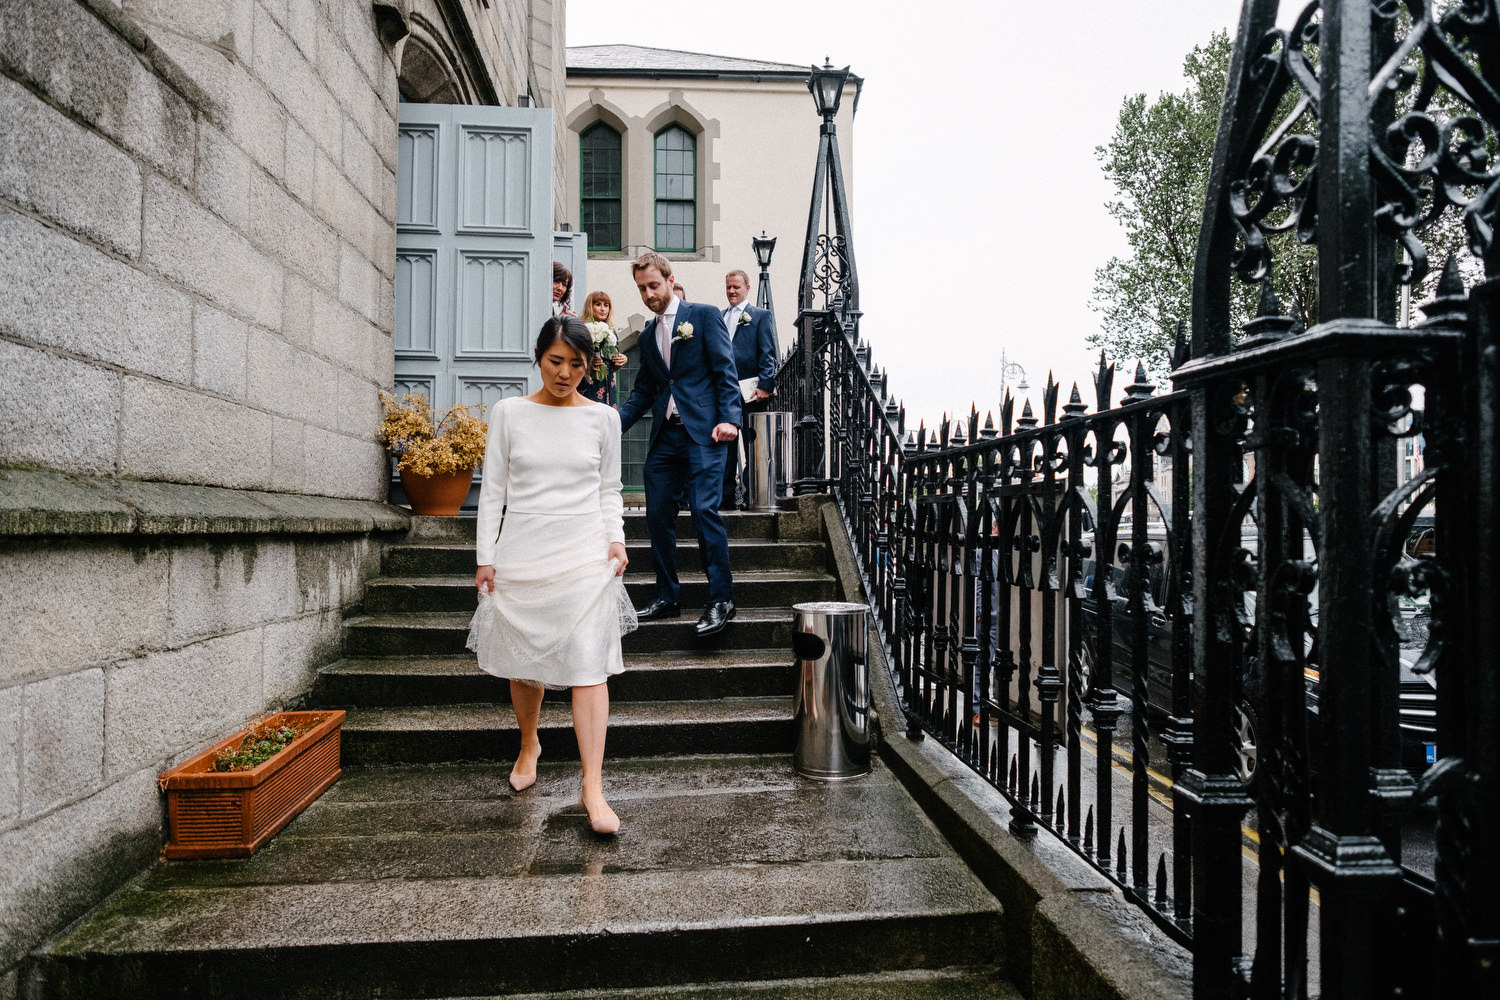 dmp0357_dublin_alley_photography_david_mcclelland_ceremony_humanist_documentary_theatre_smock_wedding_photographer